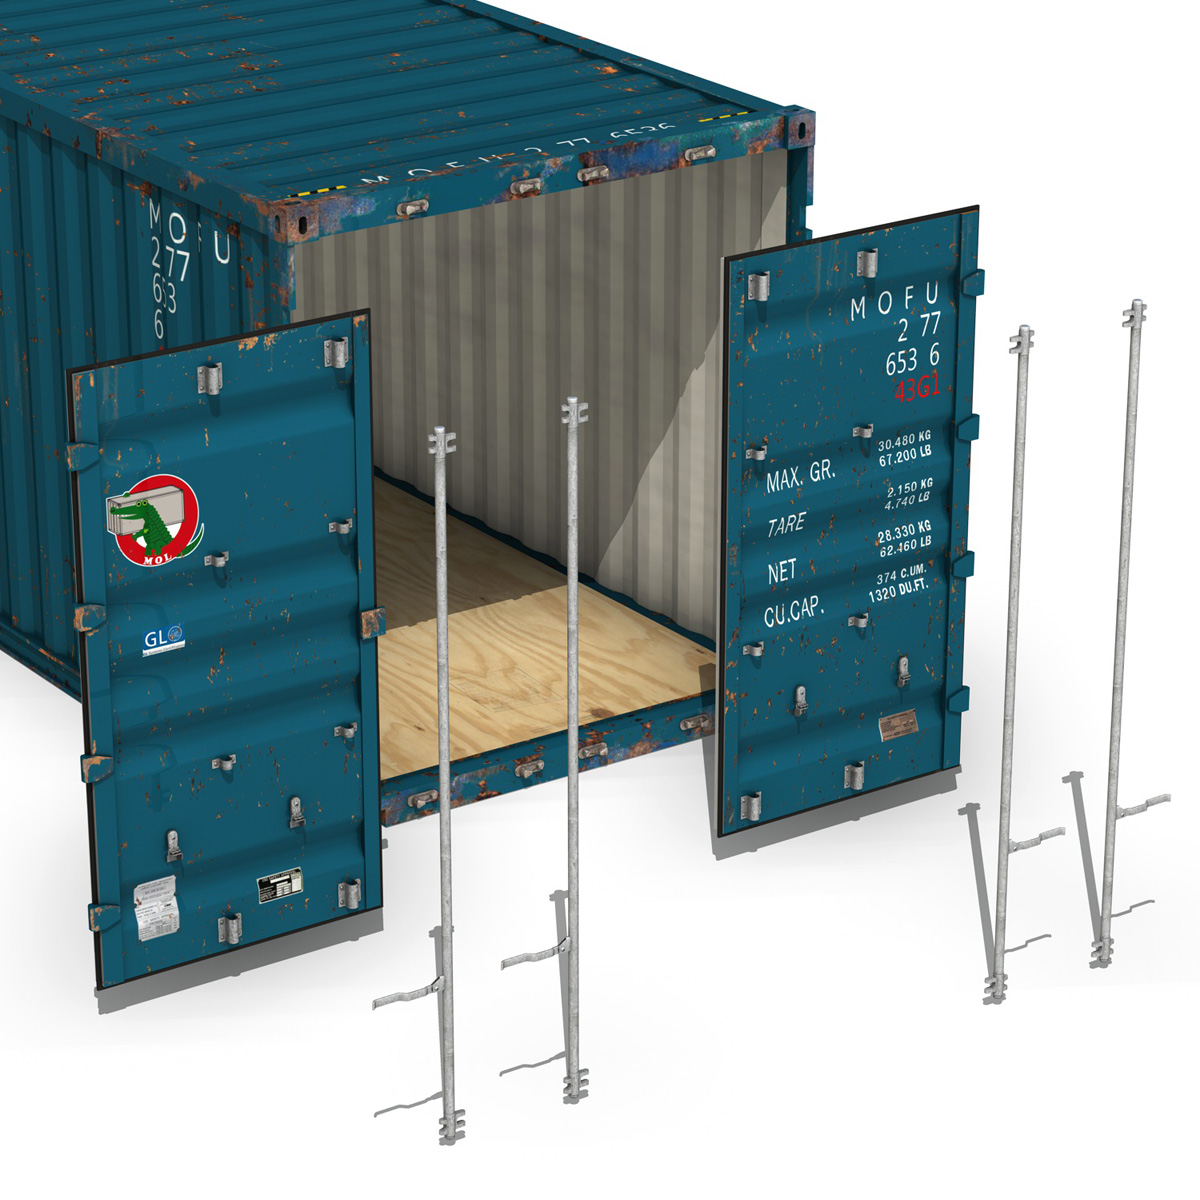 40ft shipping container – mol 3d model 3ds fbx lwo lw lws obj c4d 265140